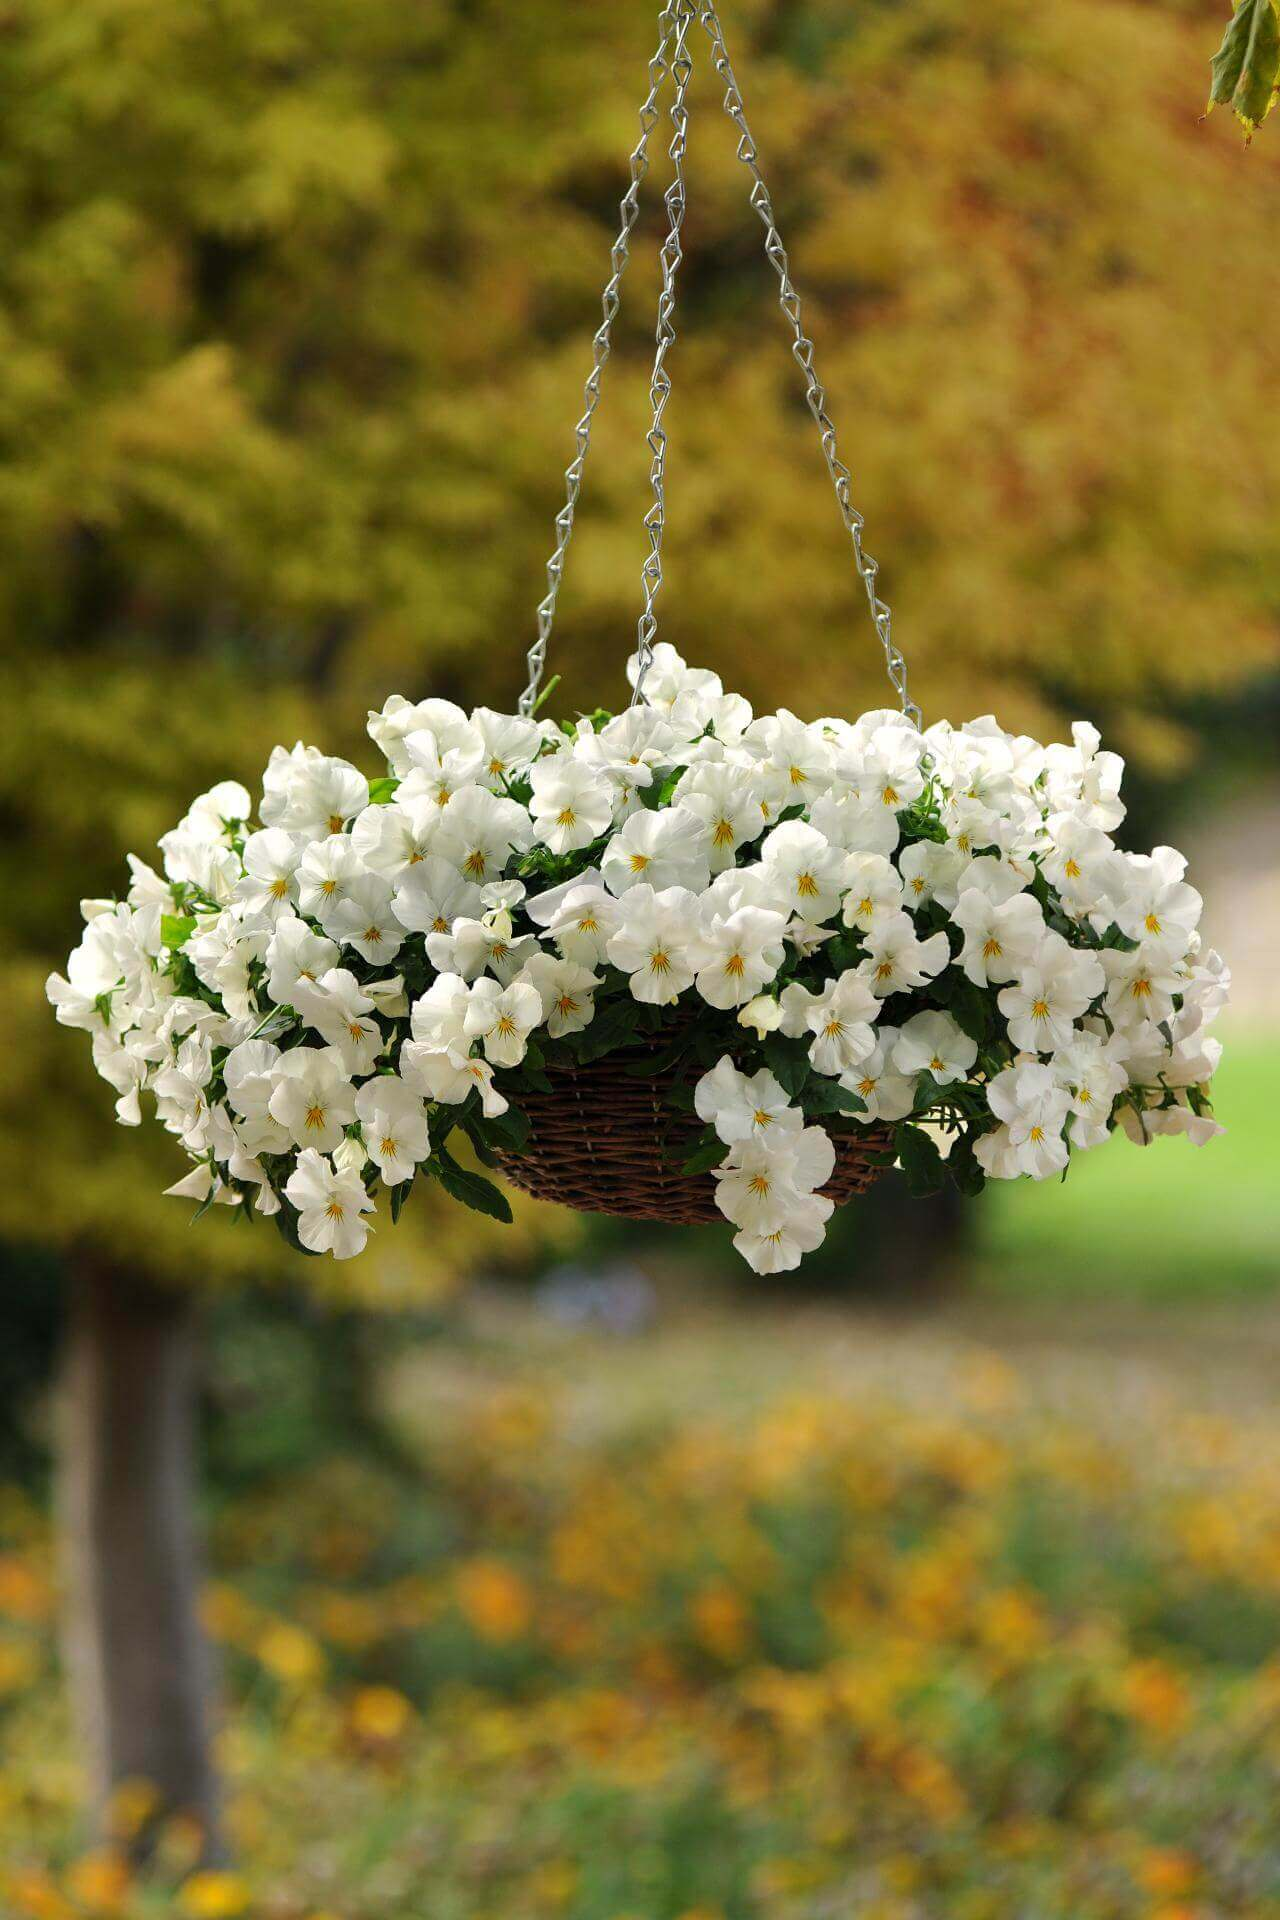 Sweetly Simple Woven Flower Basket